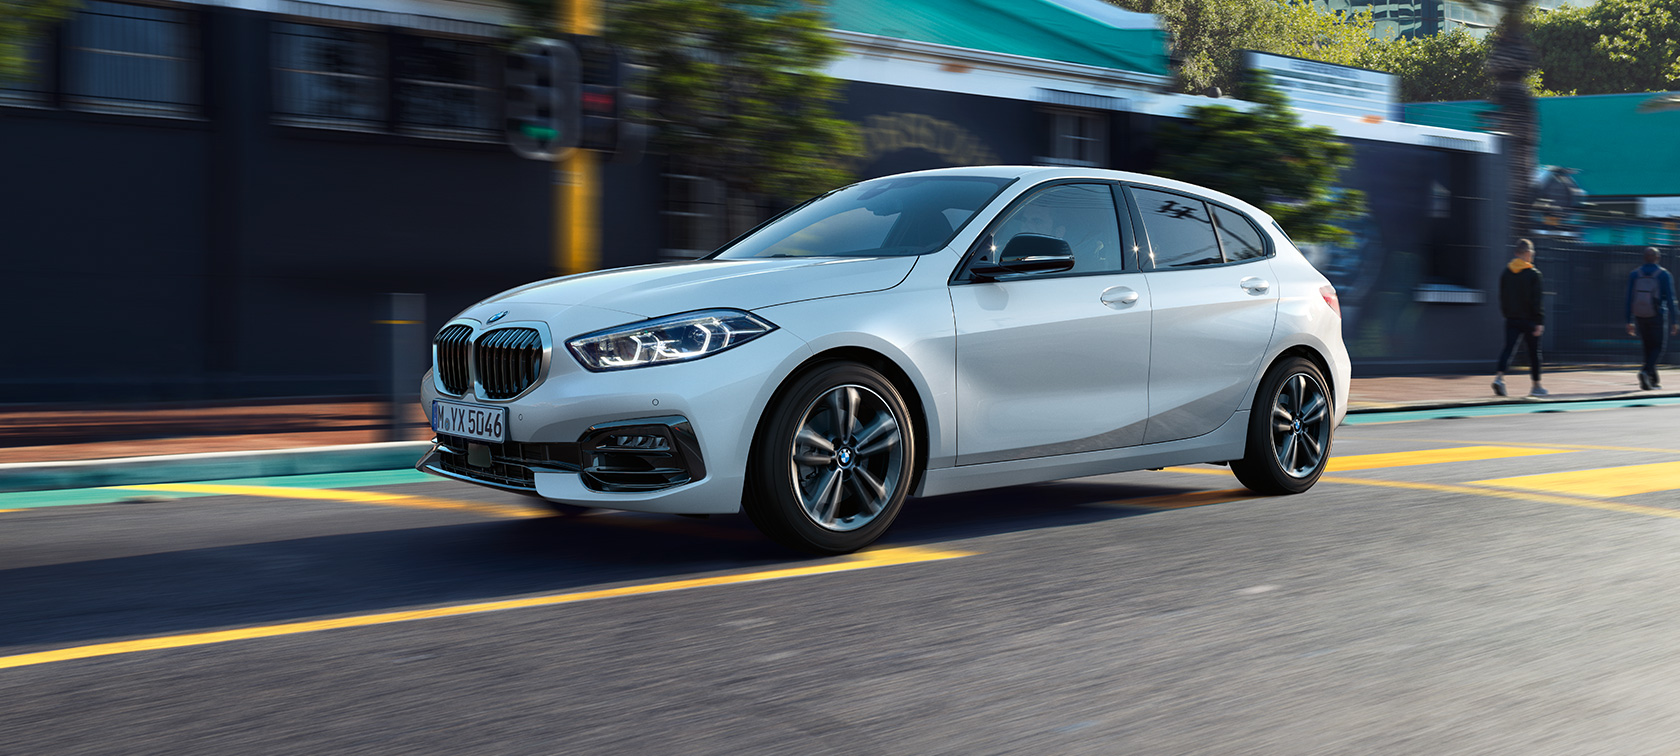 Bmw 1 Series Details And Technical Data Bmw Ly